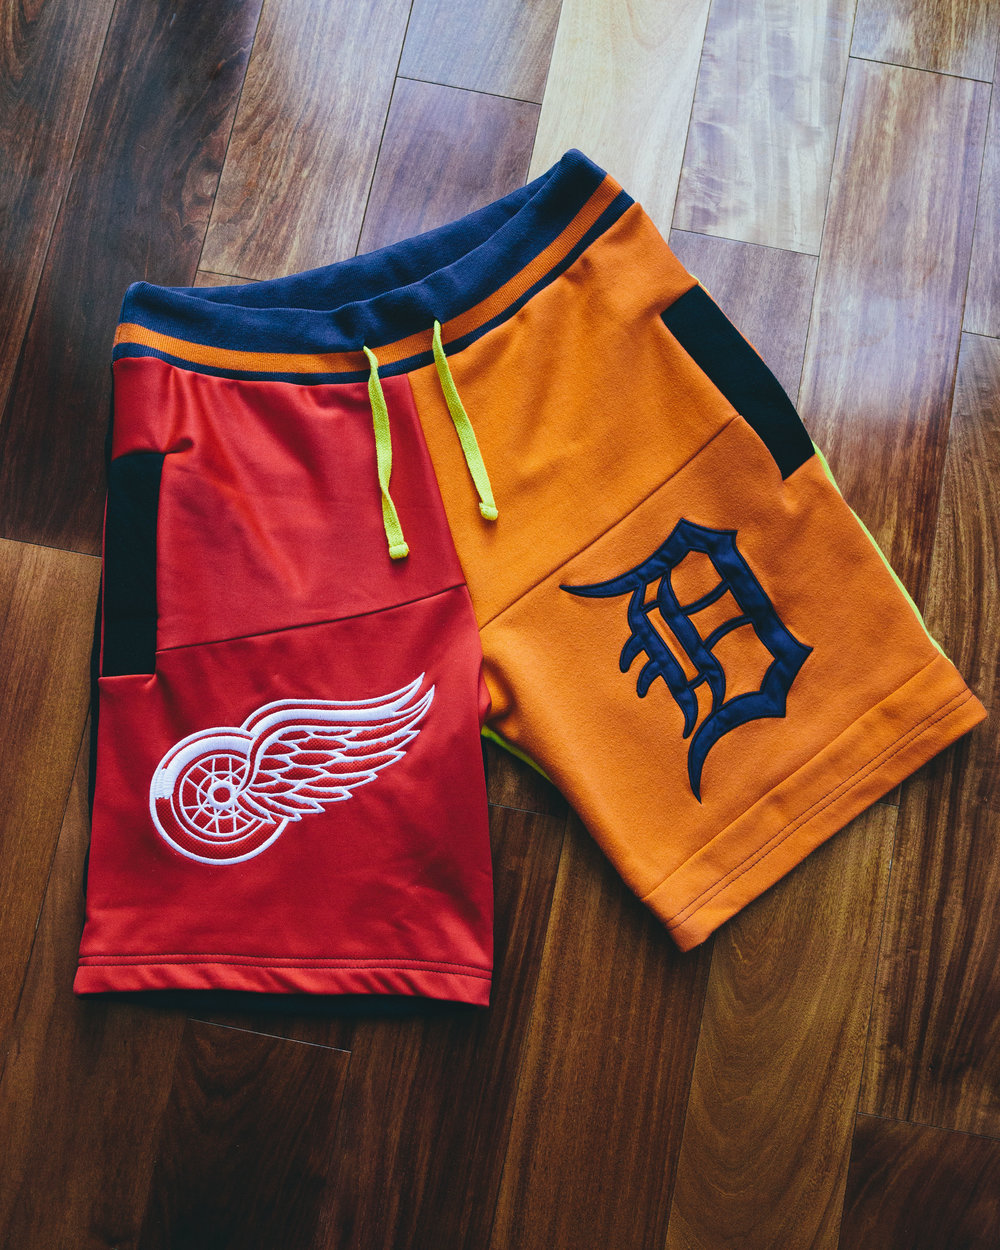 Detroit Shorts 2 - Detroit/Michigan themed, Tigers, Red Wings, Michigan, and Bad Boys.